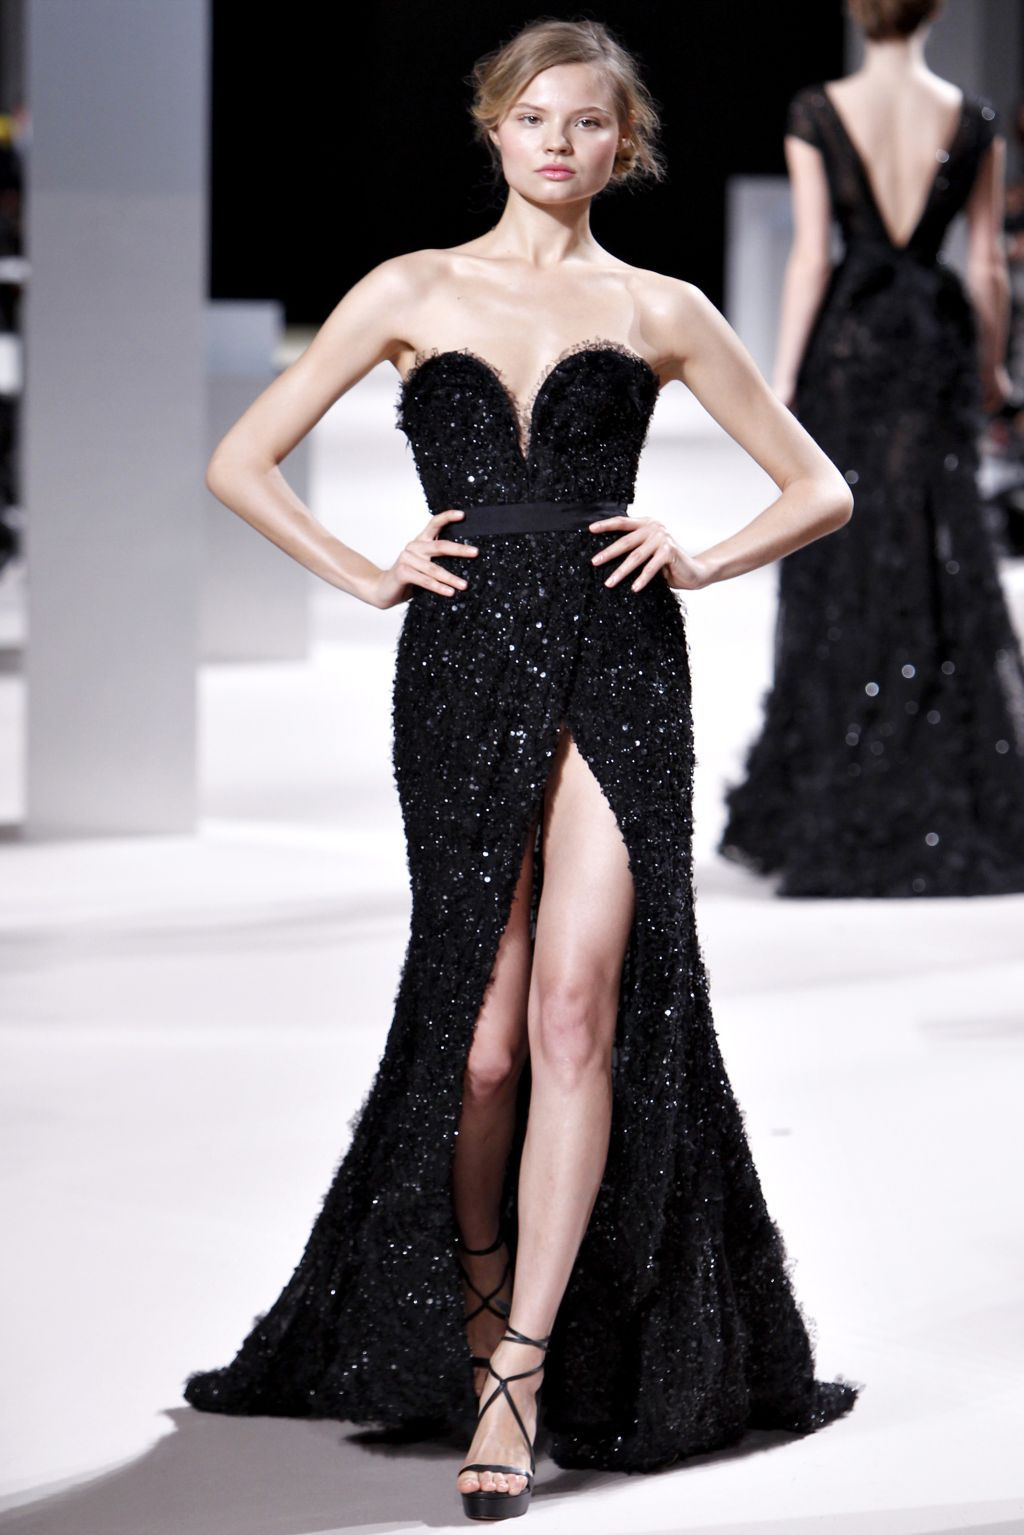 gorgeous | My Style | Pinterest | Gowns, Couture and Elegant dresses